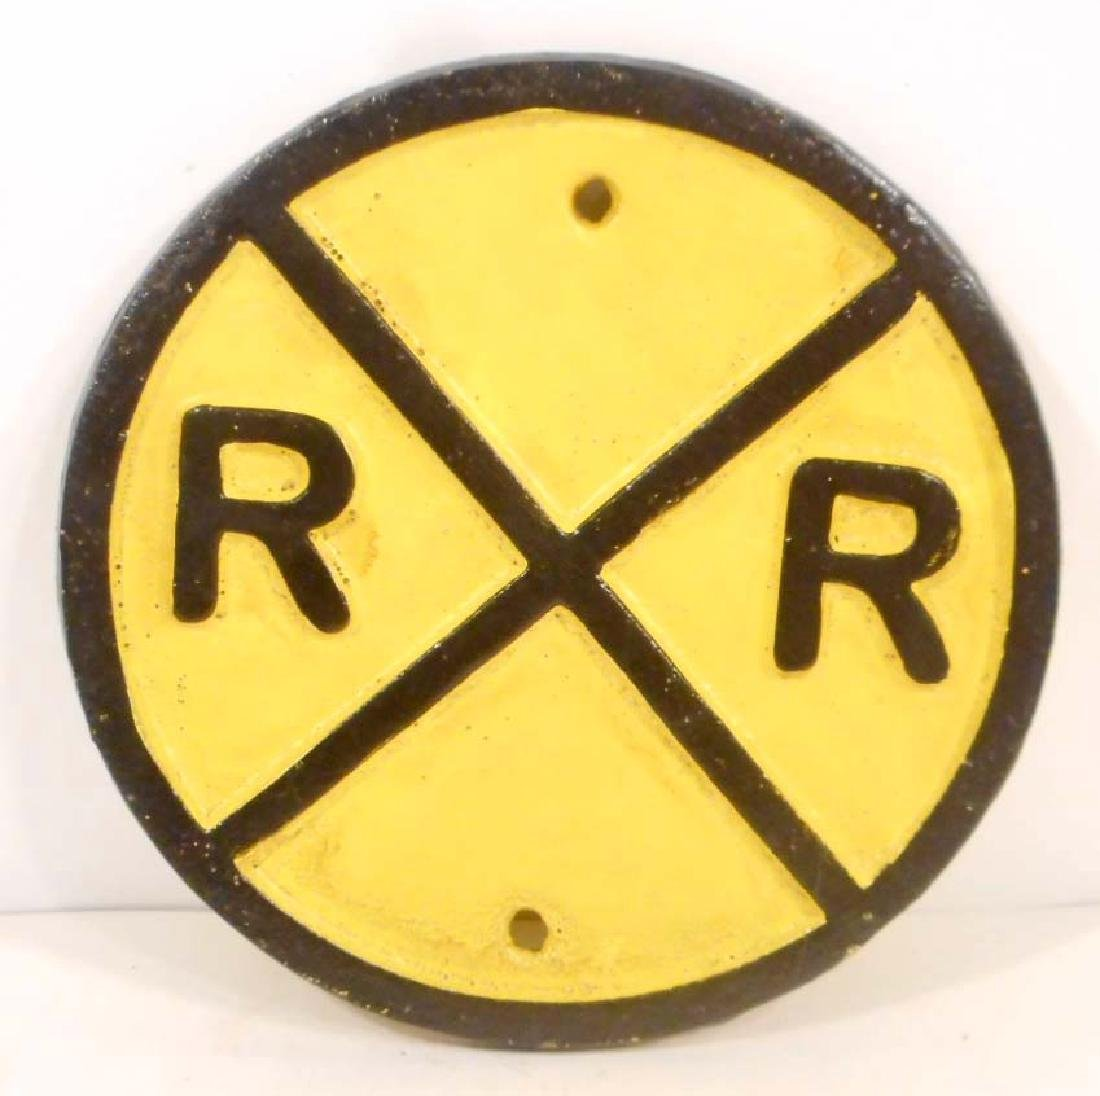 CAST IRON RAILROAD SIGN - WALL MOUNT